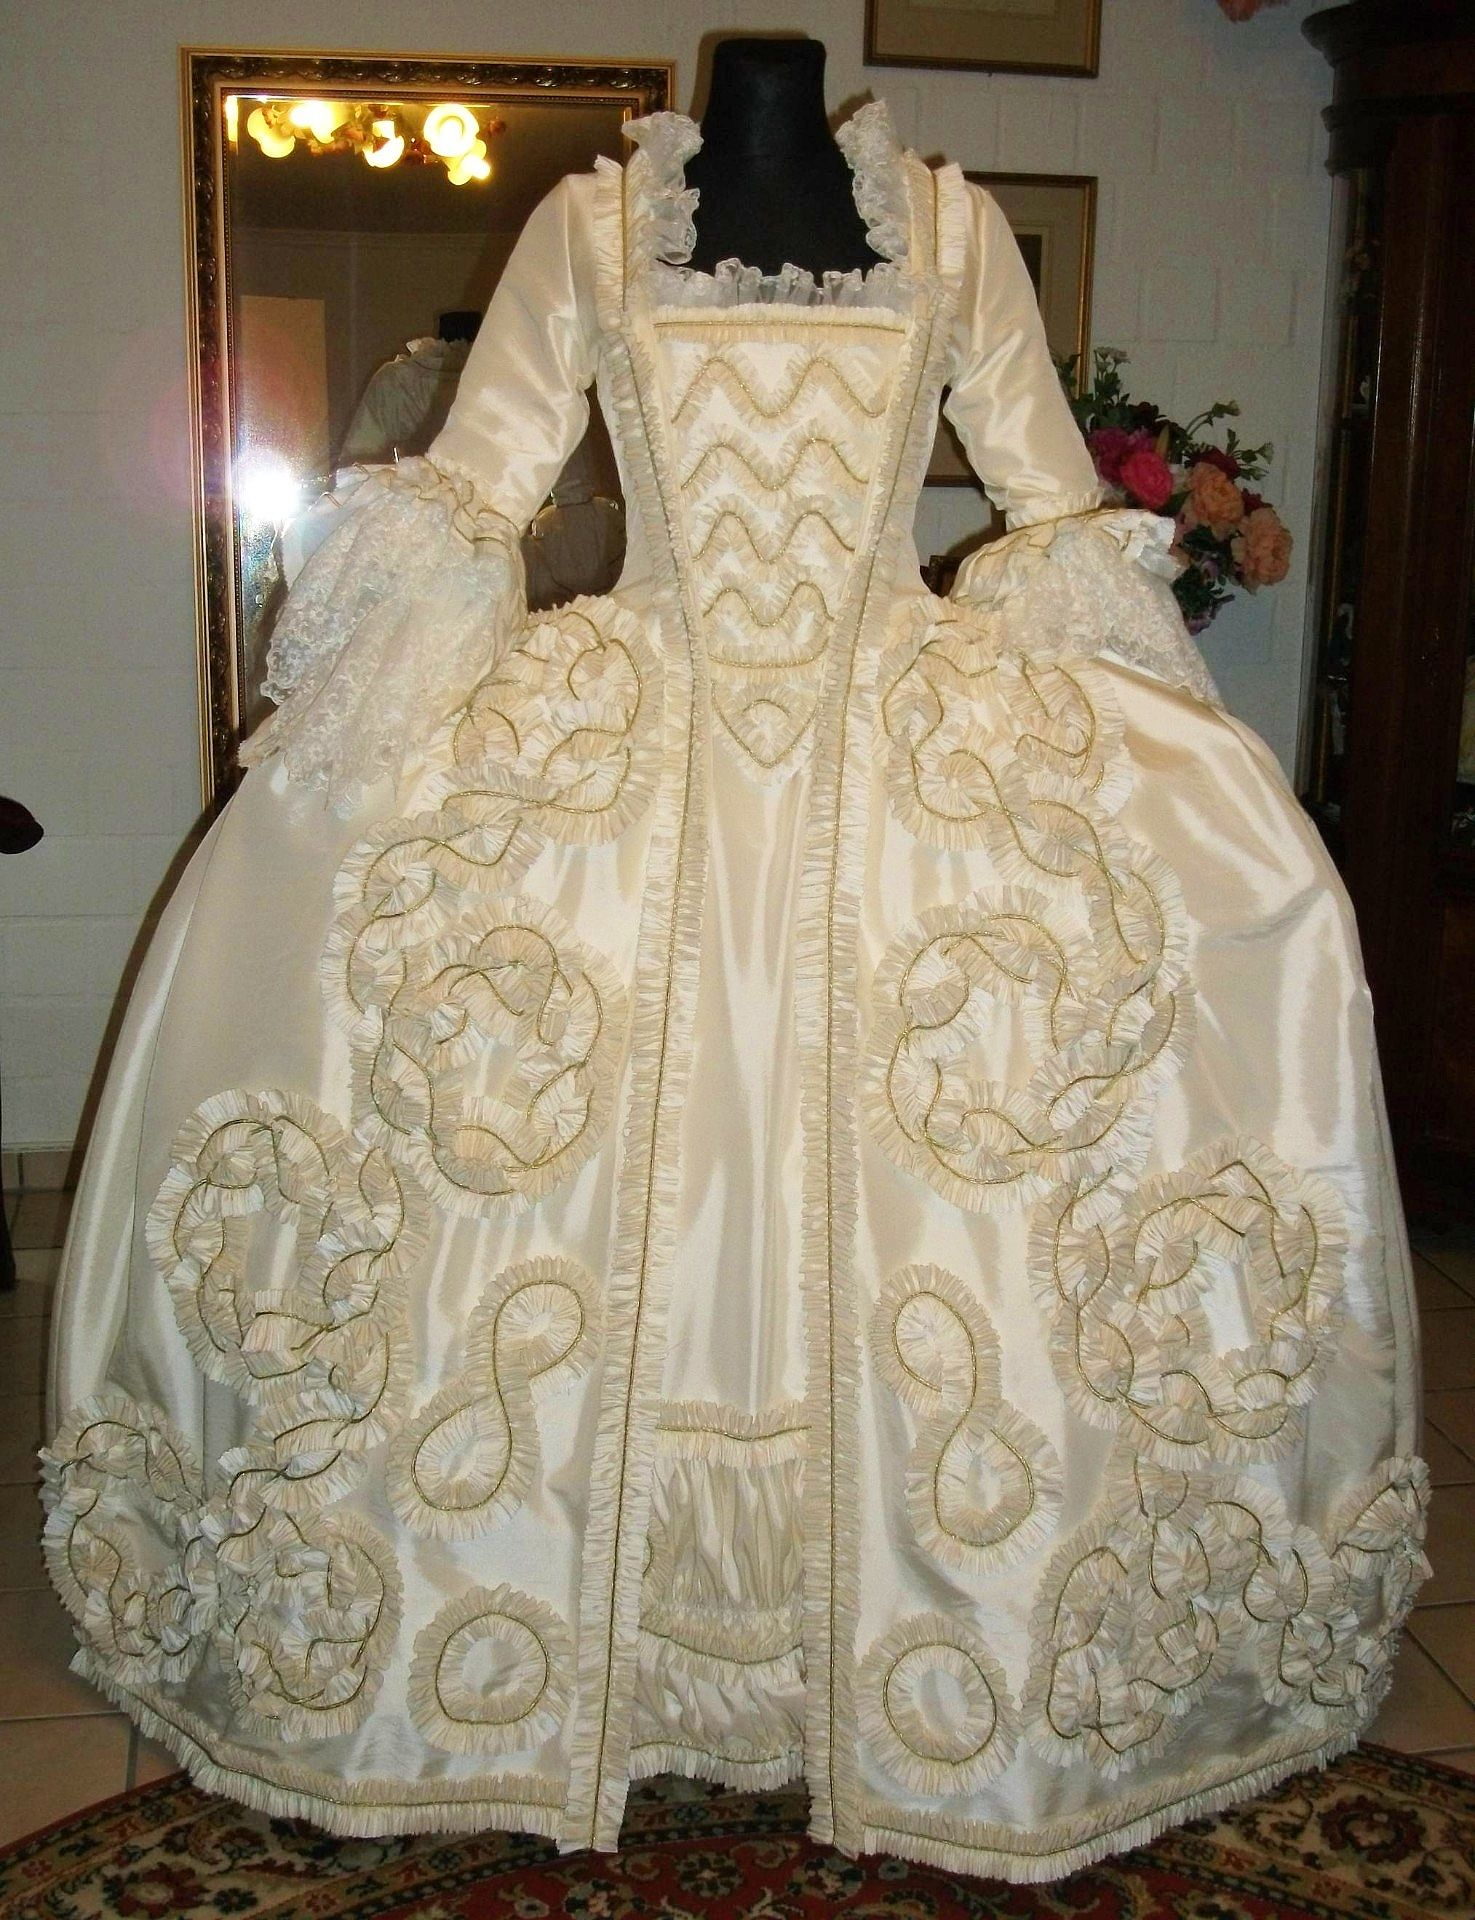 Rokoko kleid | 18th century dresses | Pinterest | Rococo, Gowns and ...